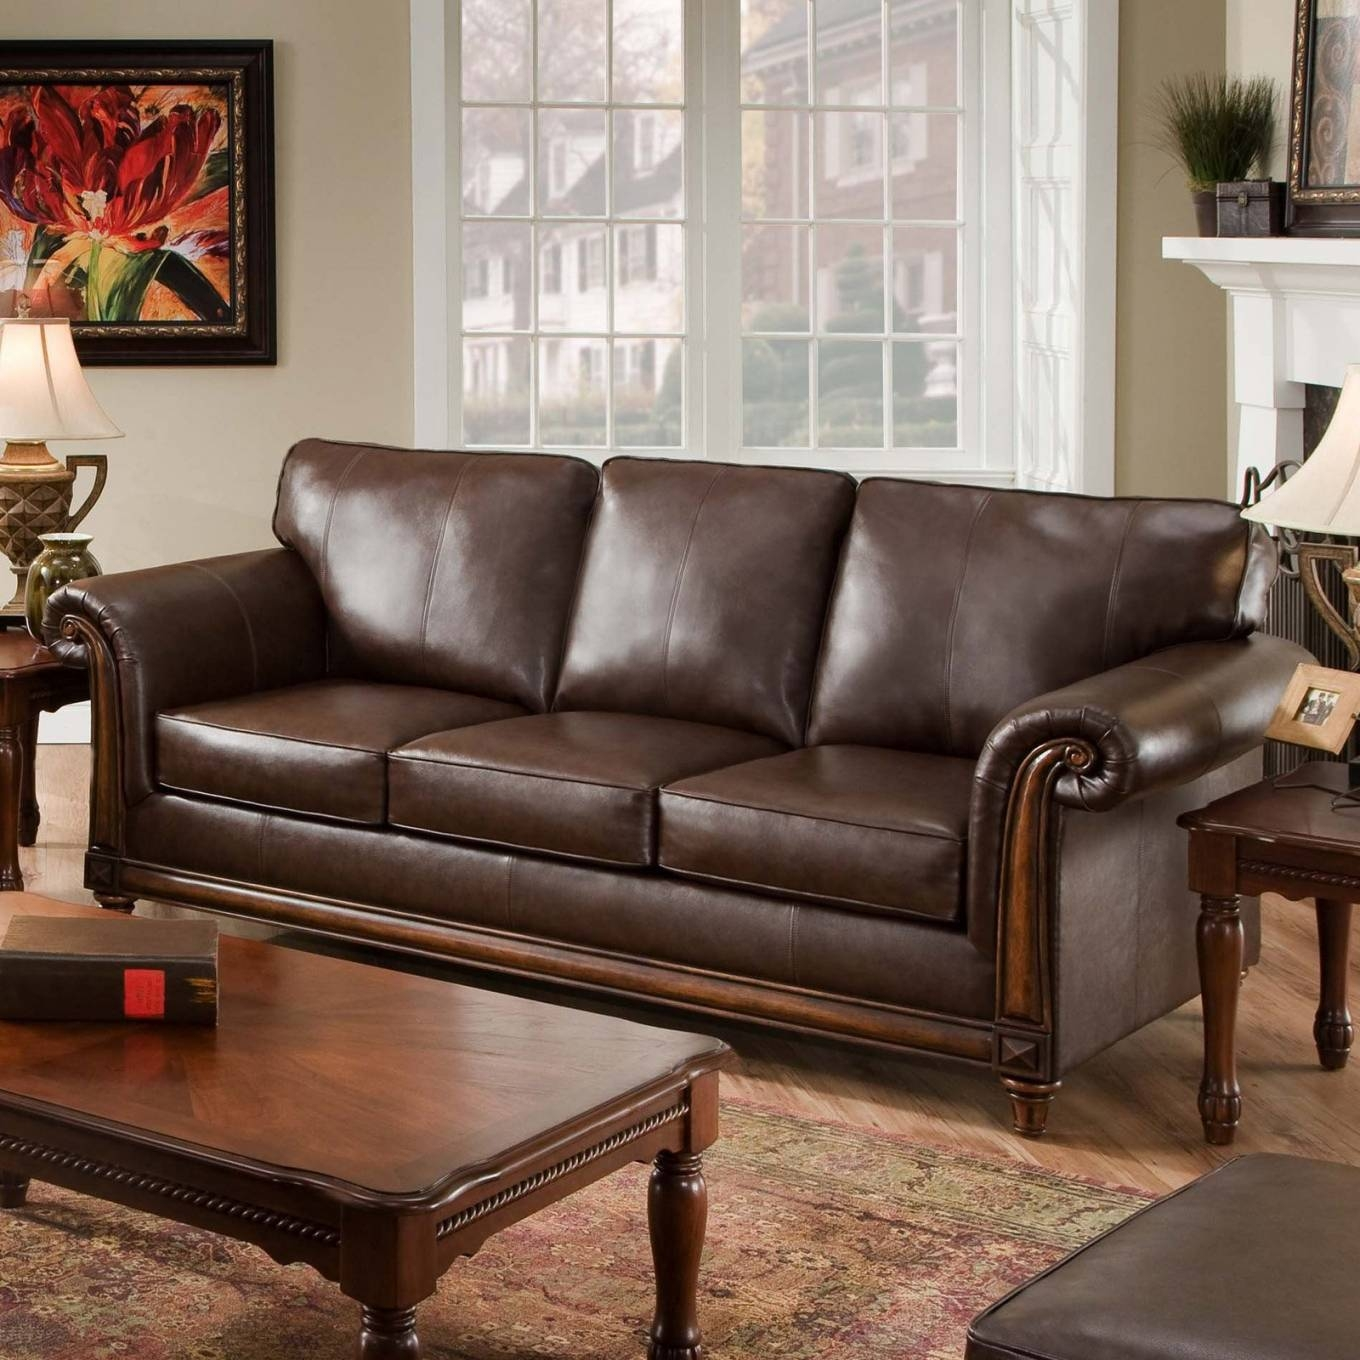 Leather Sectional Sofas San Diego - Slimsectionalsofas pertaining to Sectional Sofa San Diego (Image 16 of 30)